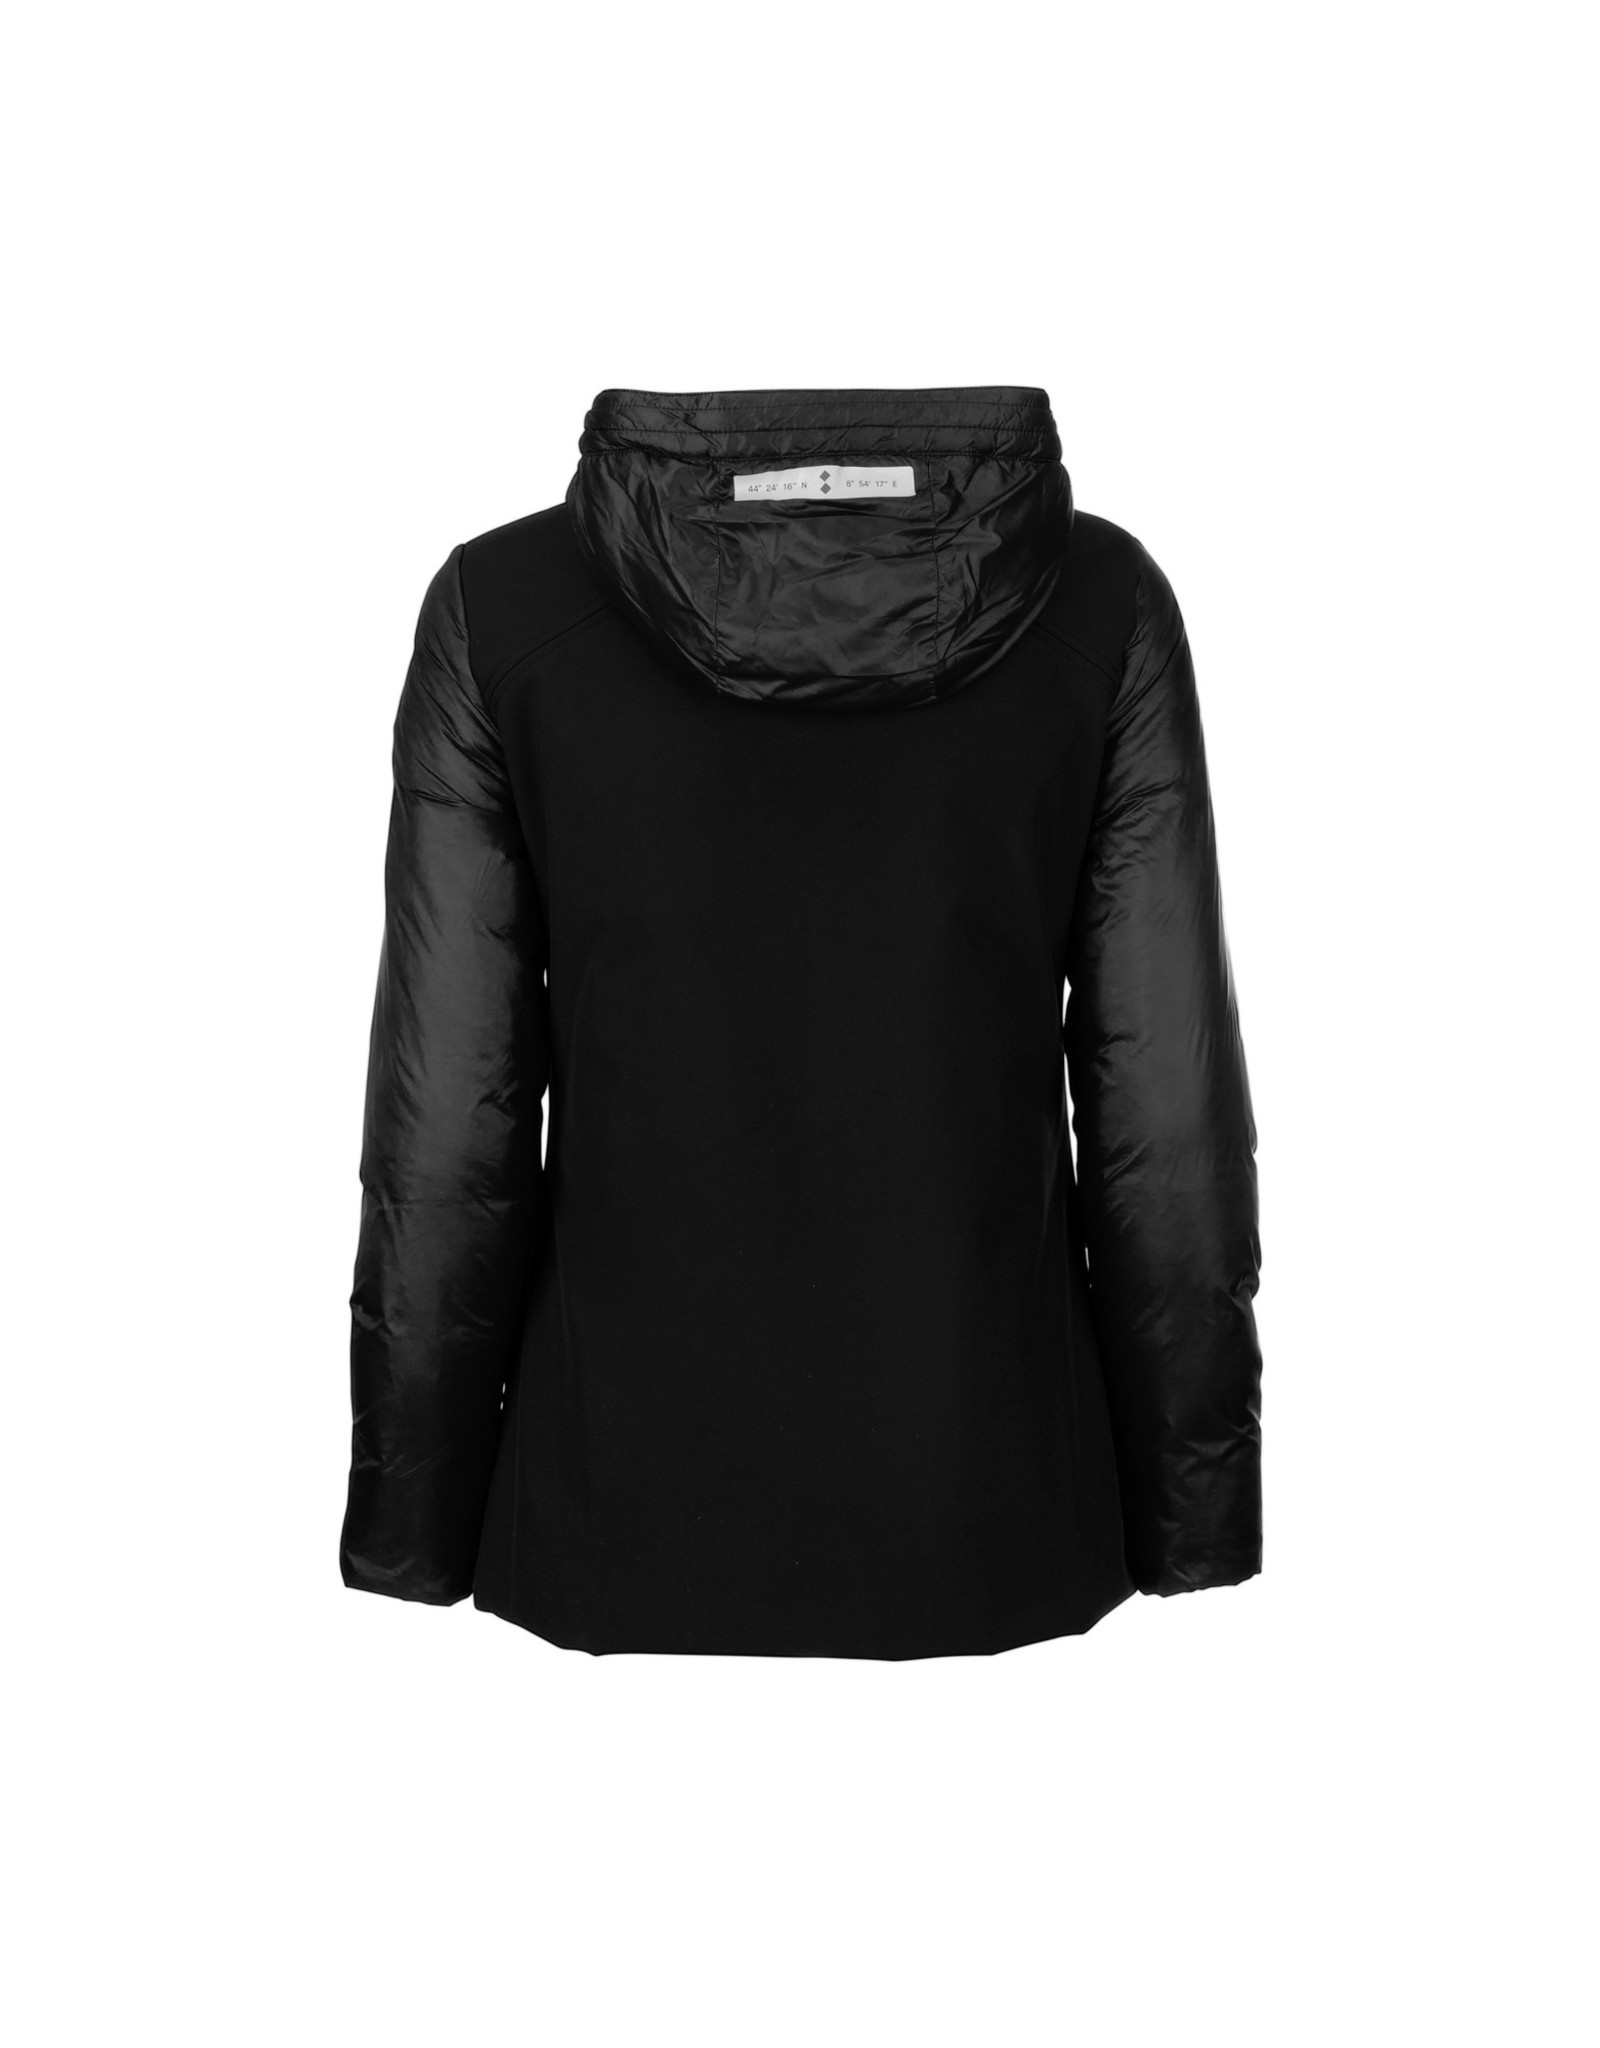 Slam Jacket Arbus - Black ( 500 )